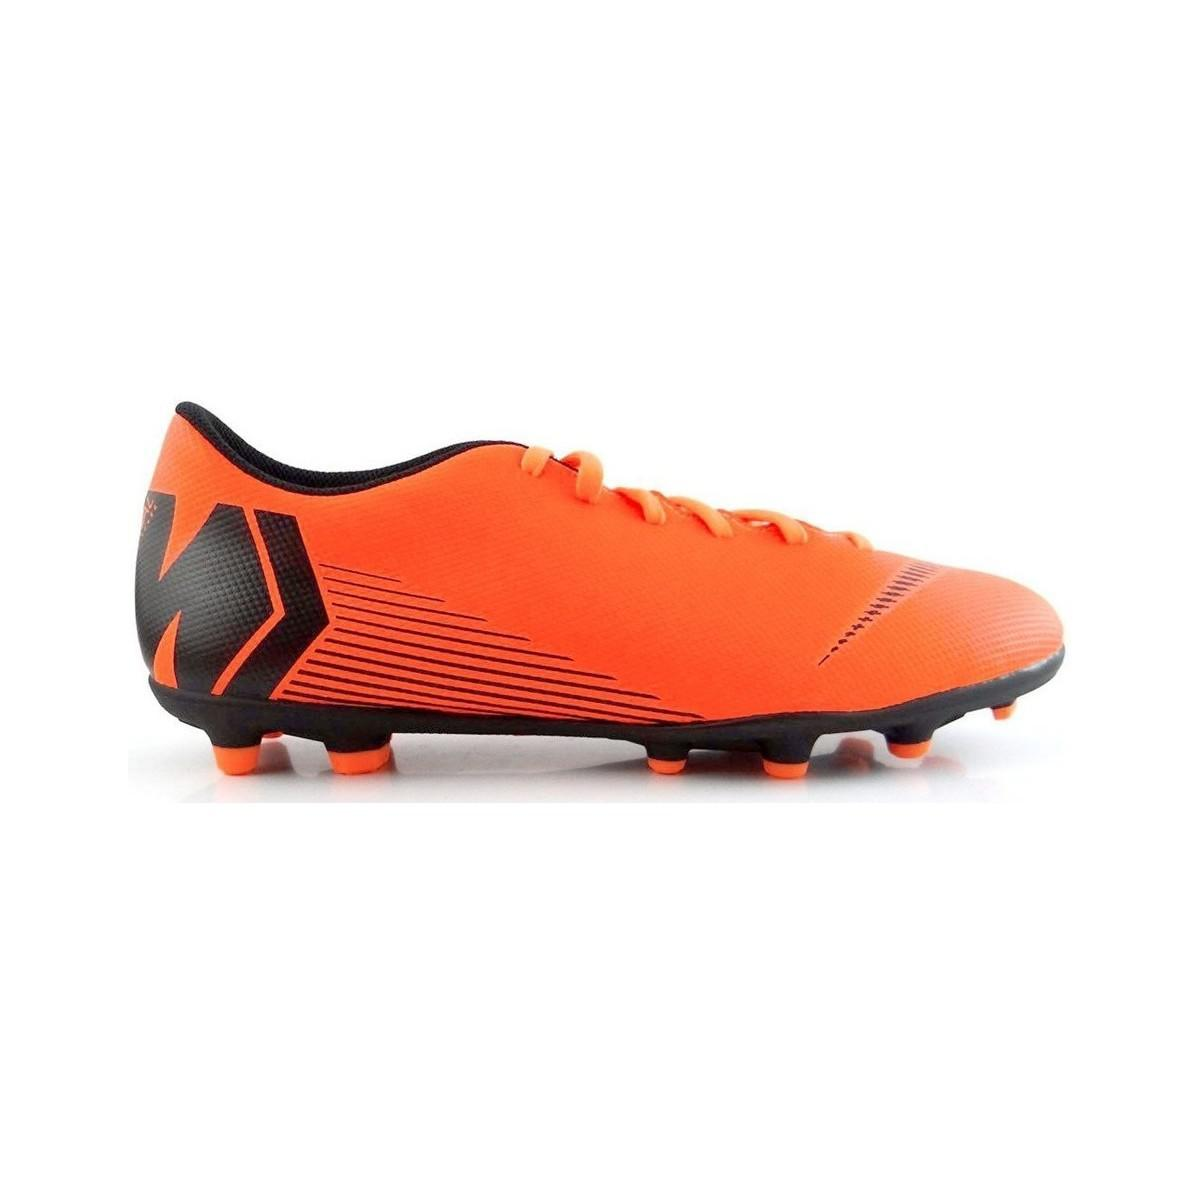 1a21be7d6bbe Nike Mercurial Vapor Club Mg Men s Football Boots In Orange in ...